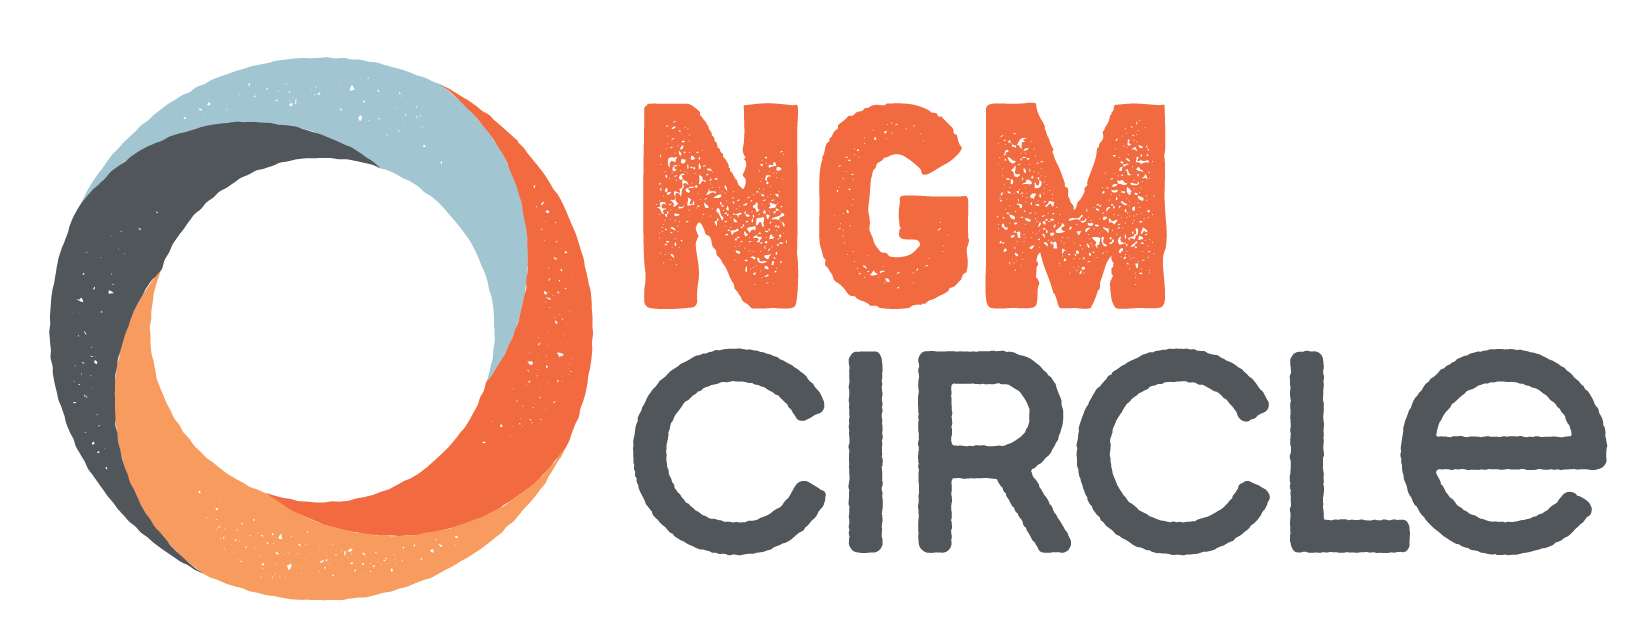 NGMcircle-01 PRIMARY.png